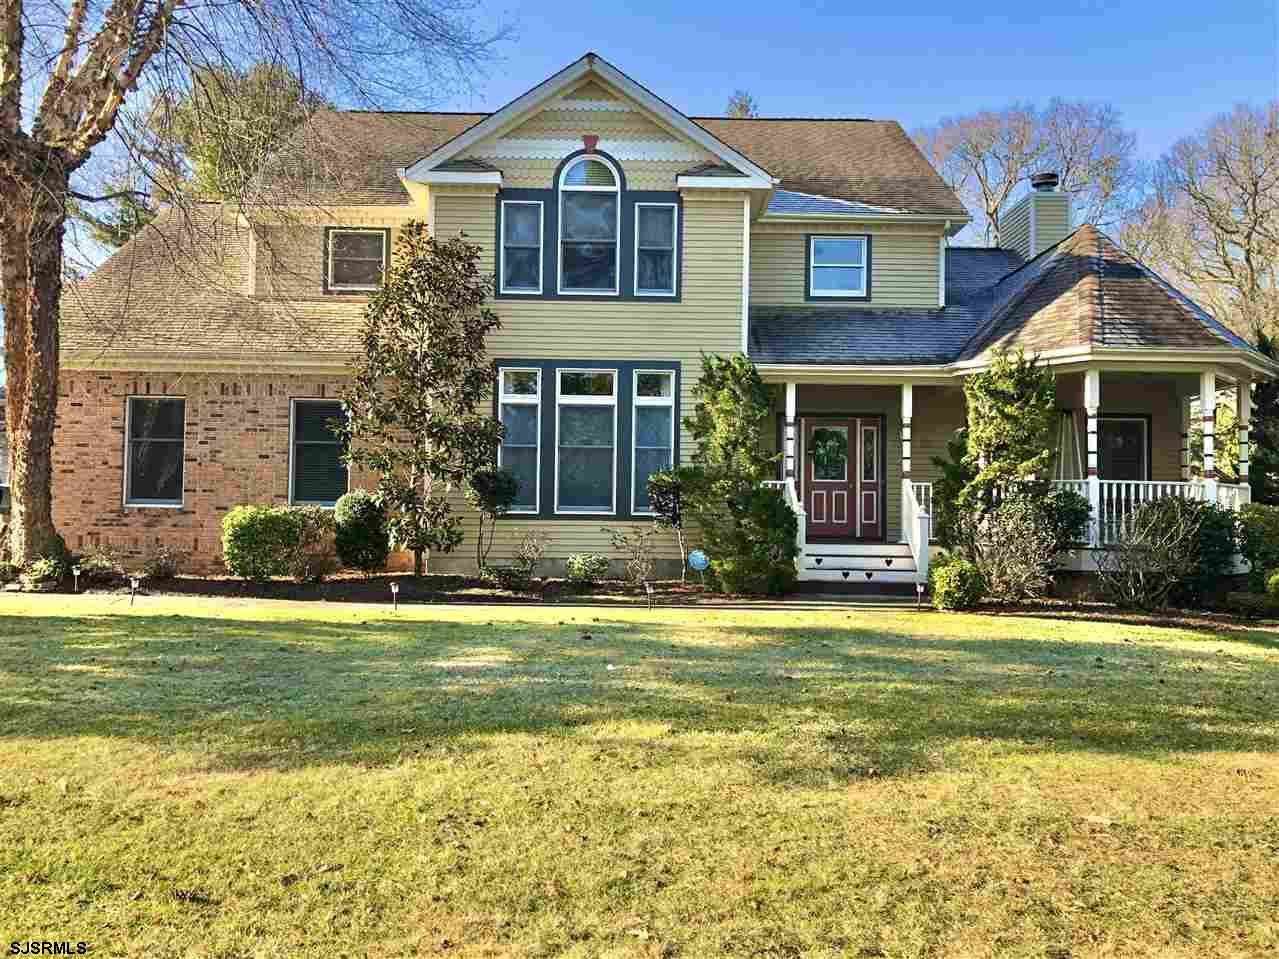 The discerning Linwood buyer will appreciate the attention to detail in this gracious home. From the